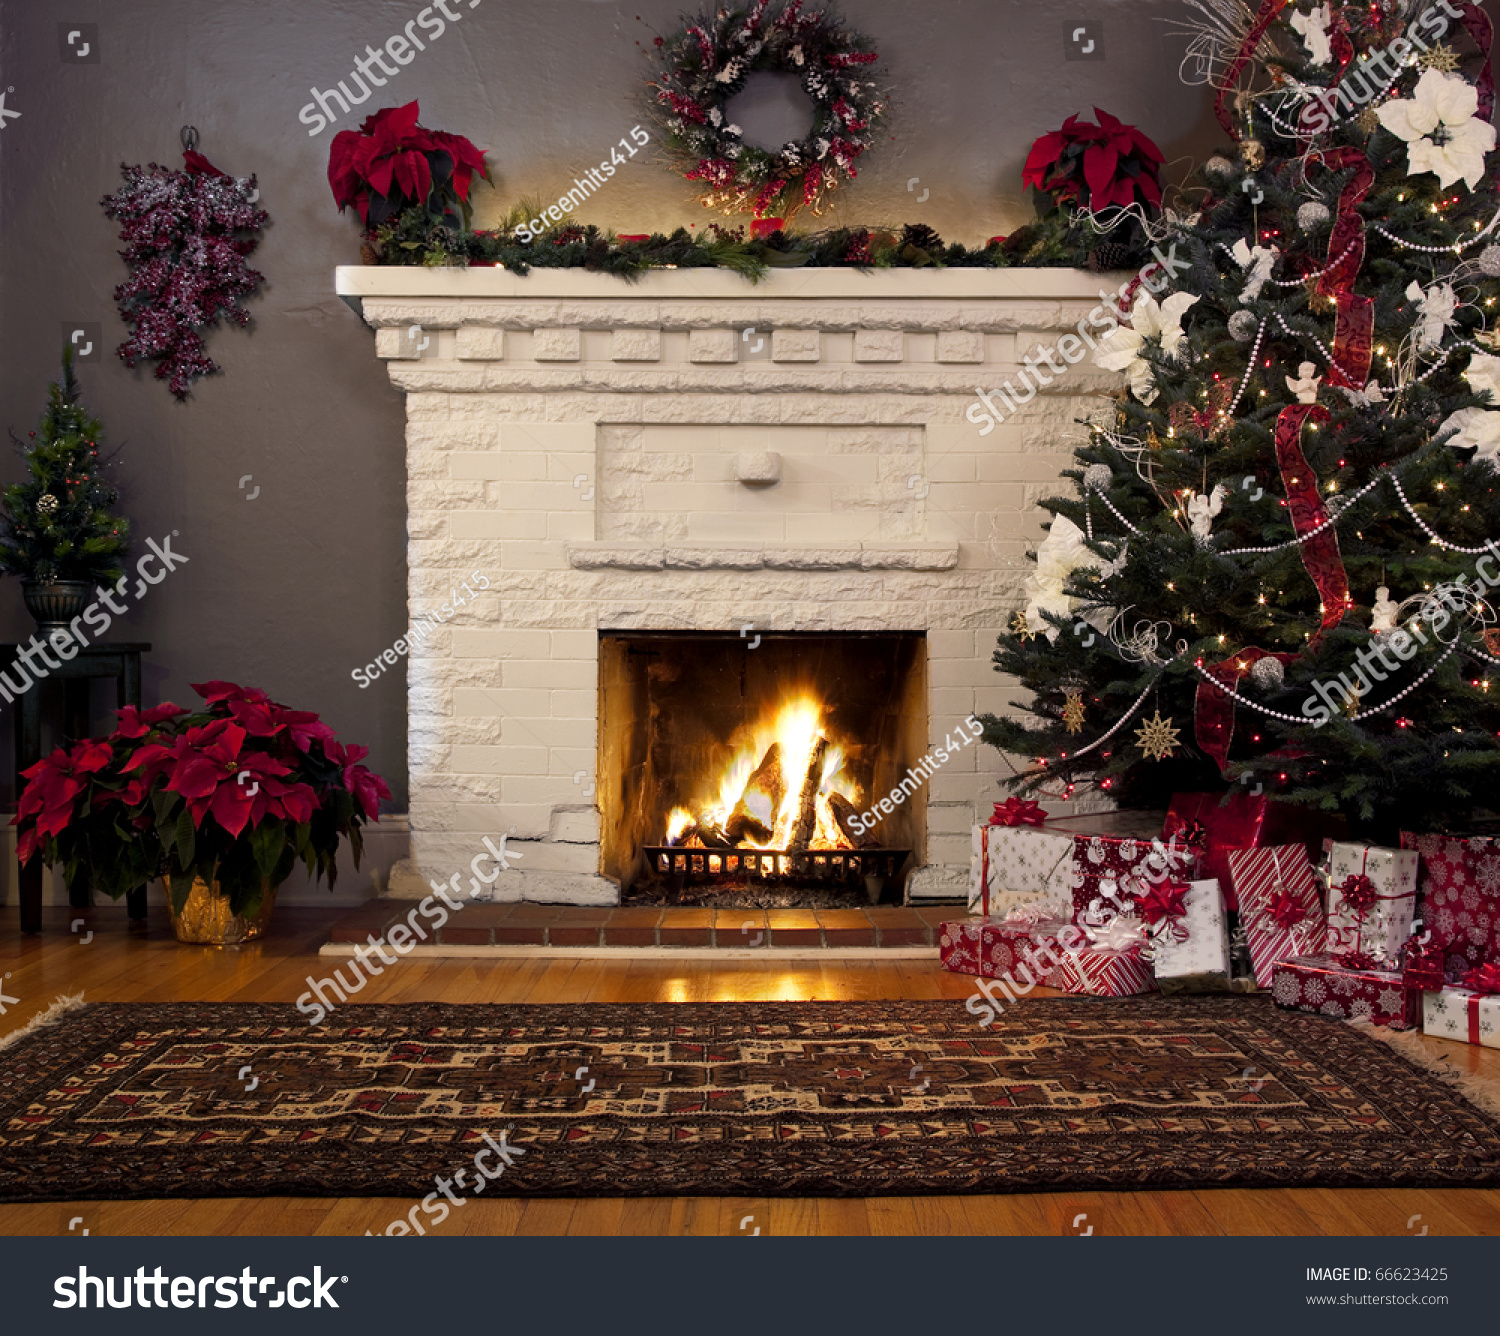 Christmas Tree And Fireplace Background Stock Photo